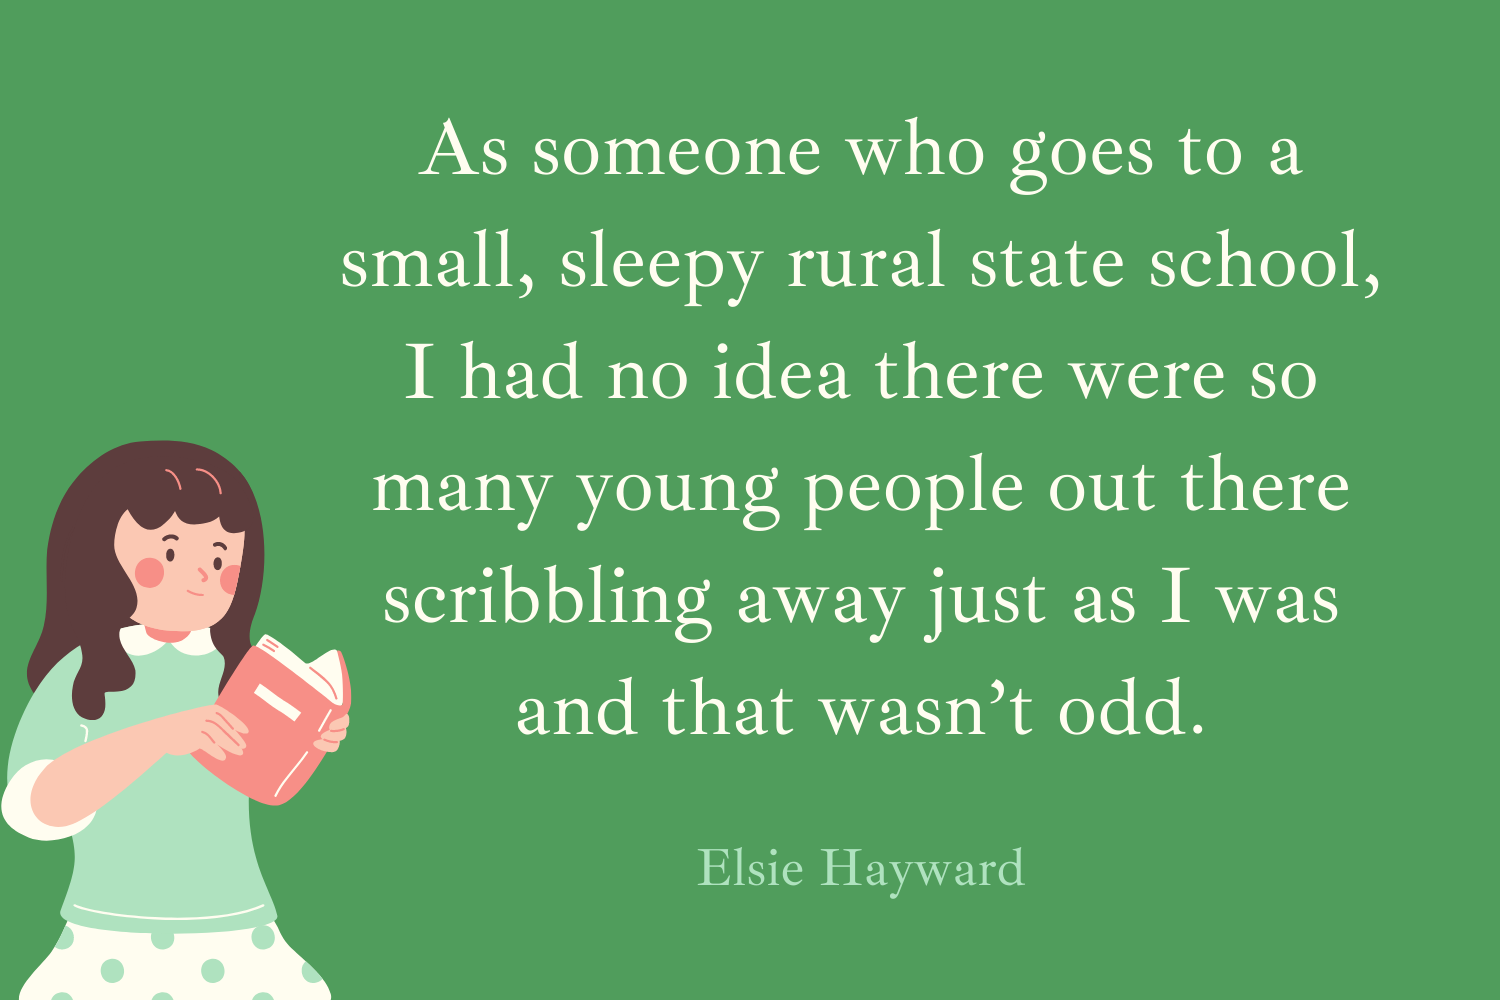 """""""As someone who goes to a small, sleepy rural state school, I had no idea there were so many people passionate about poetry out there, and young people scribbling away just as I was and that wasn't odd."""" (Elsie Hayward)"""